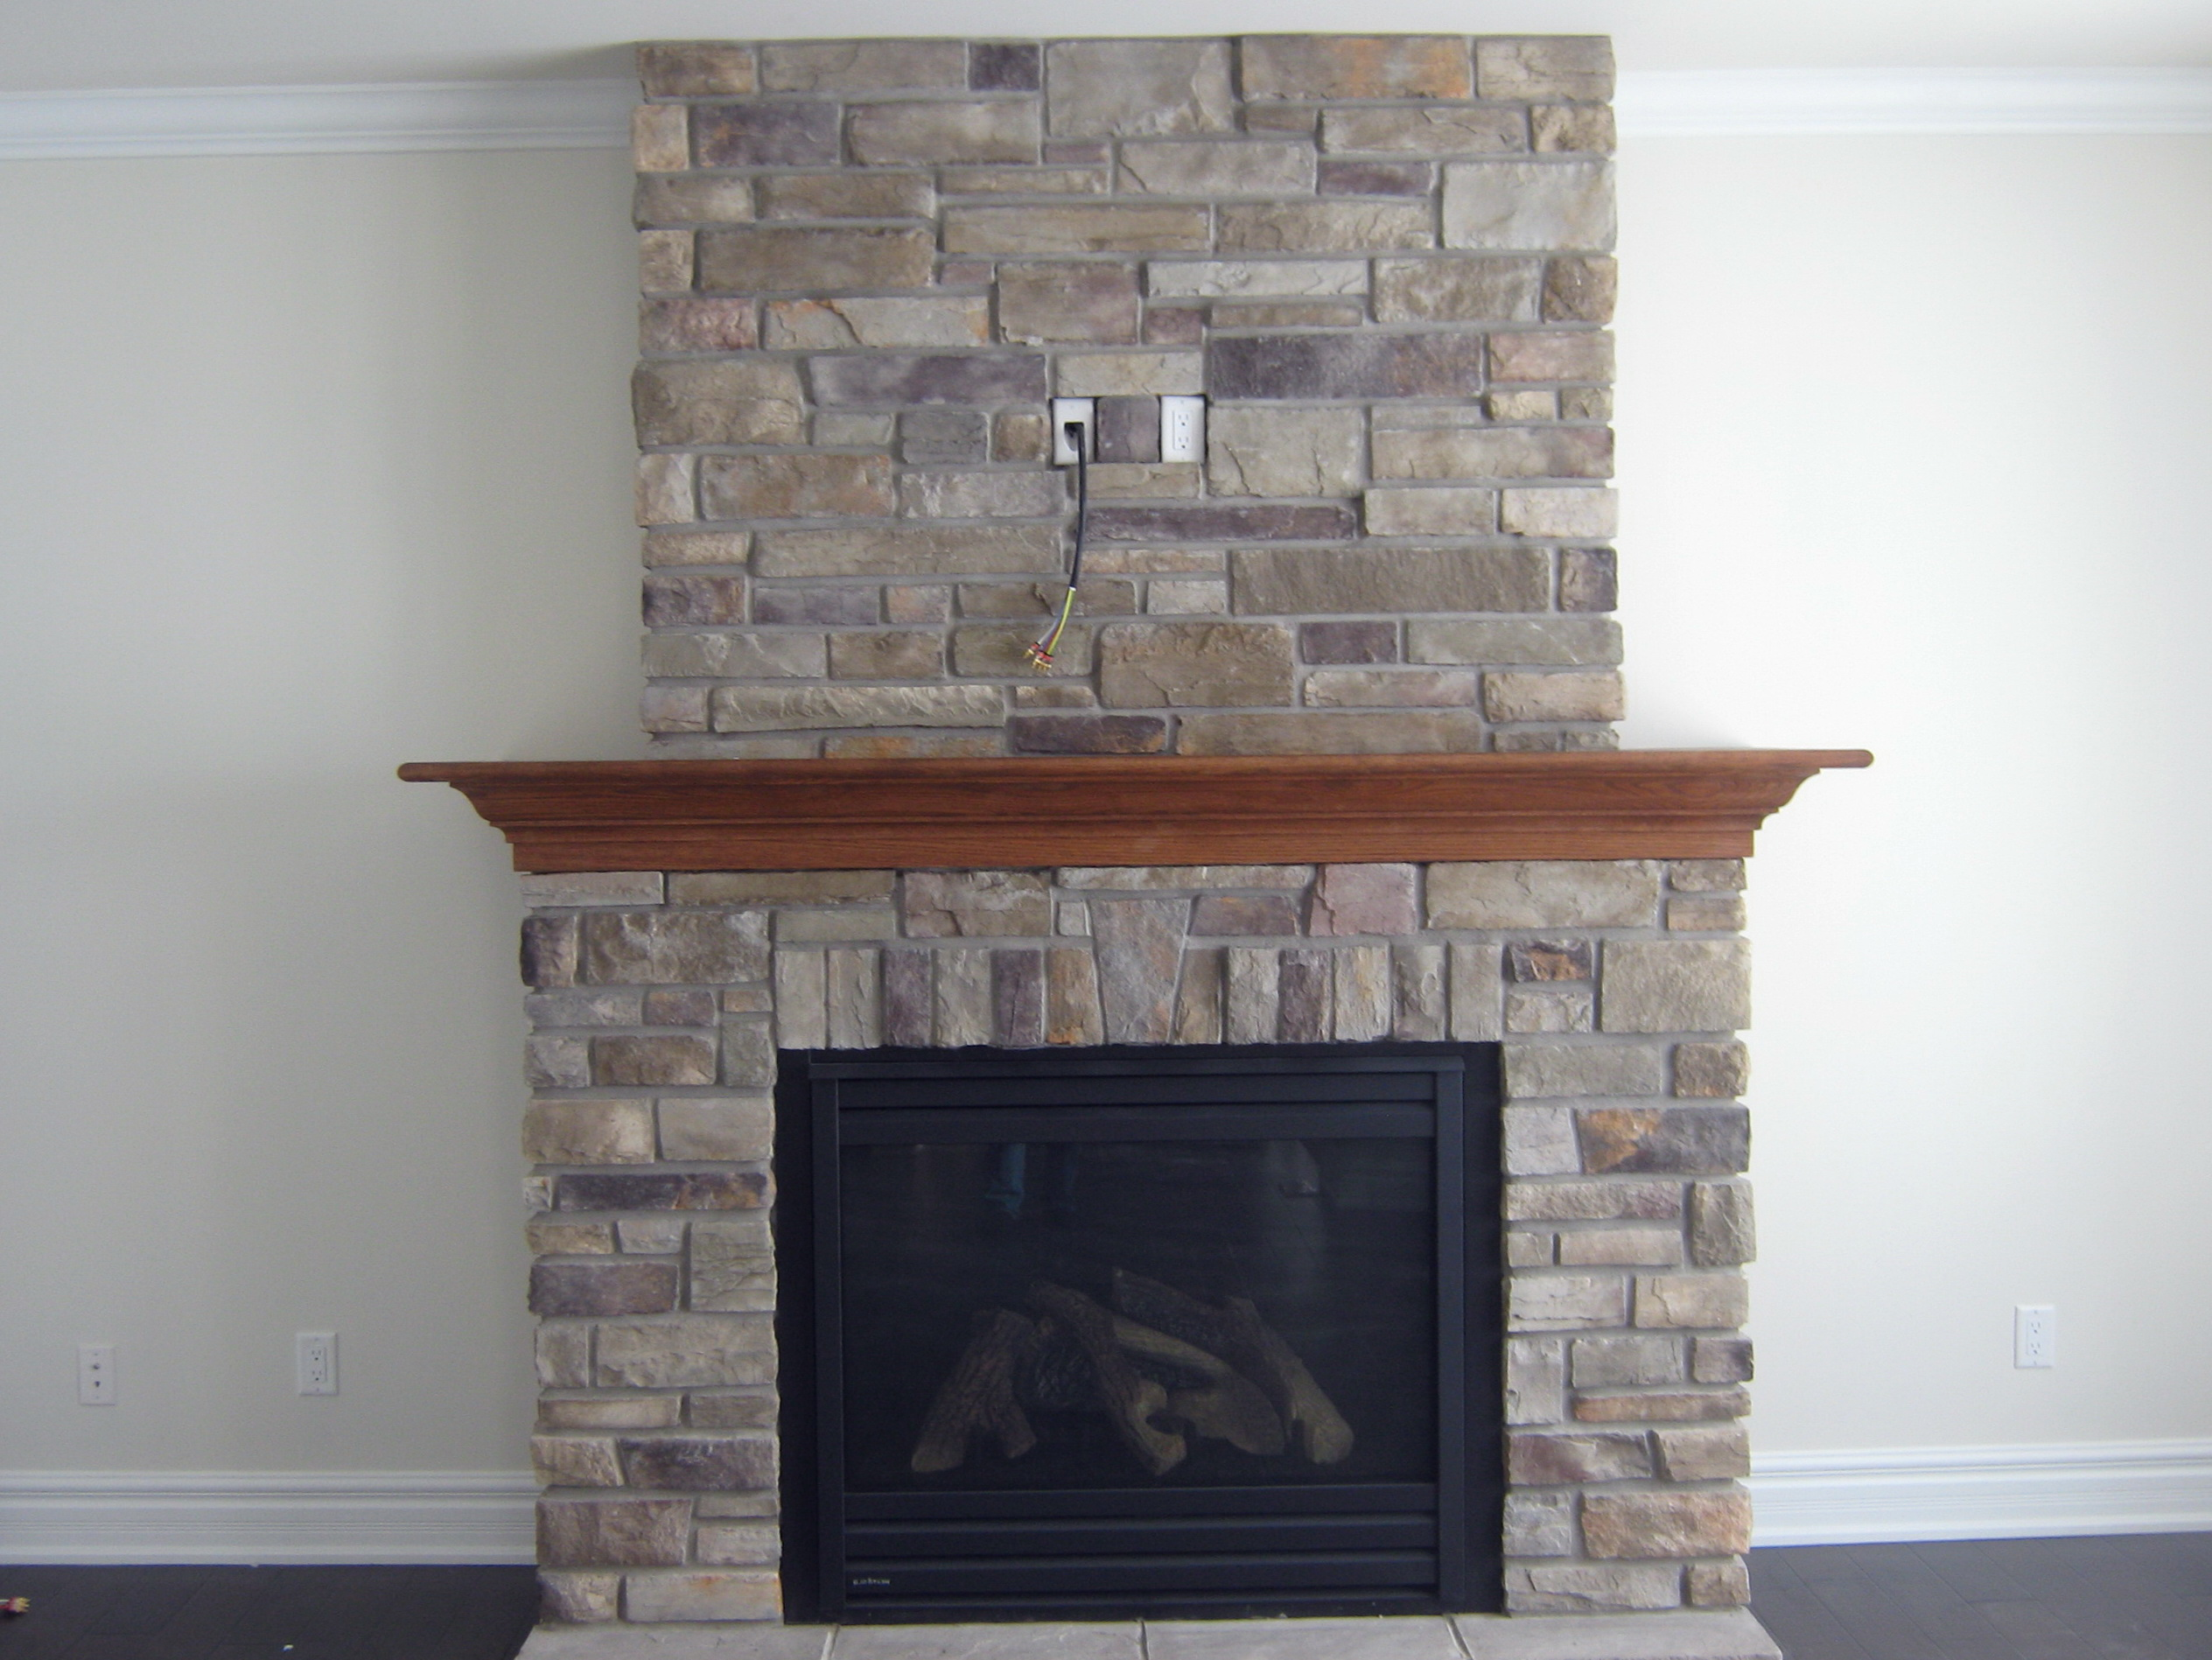 How to reface a brick fireplace with stone home design ideas - How to reface a brick fireplace ...